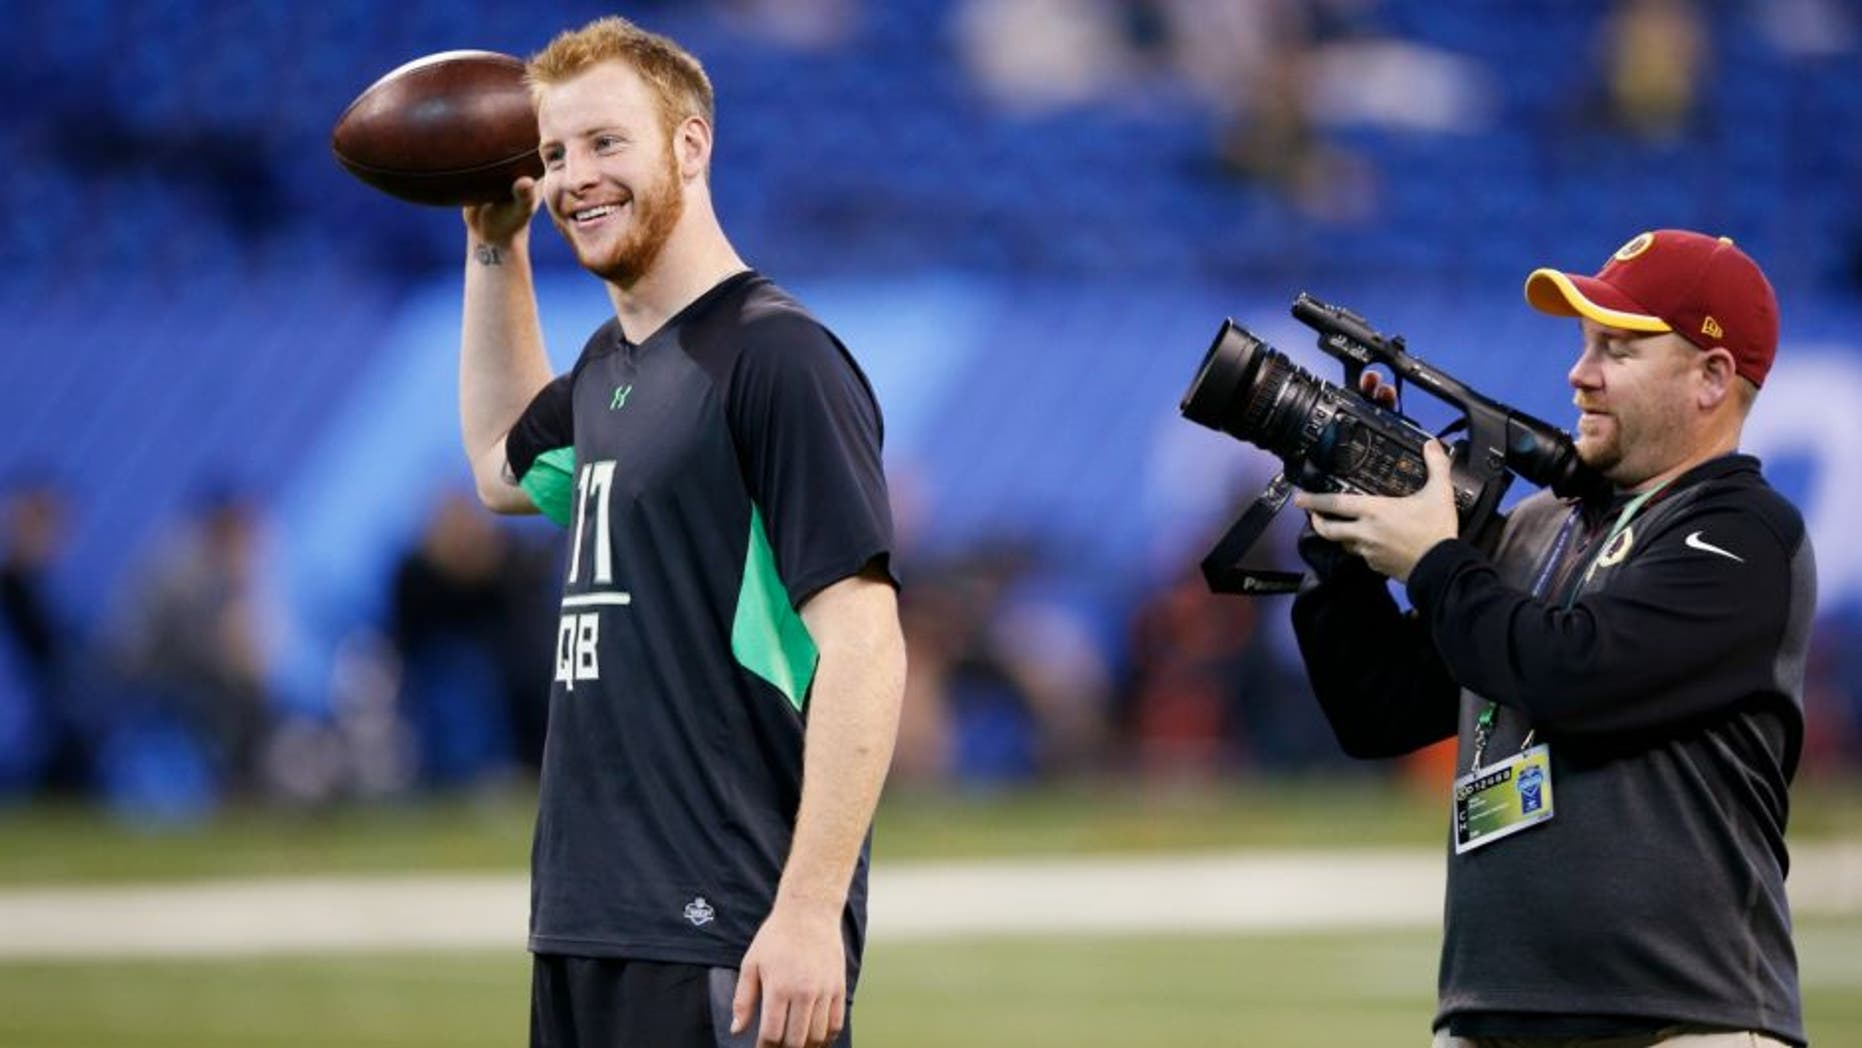 INDIANAPOLIS, IN - FEBRUARY 27: Quarterback Carson Wentz of North Dakota State looks on during the 2016 NFL Scouting Combine at Lucas Oil Stadium on February 27, 2016 in Indianapolis, Indiana. (Photo by Joe Robbins/Getty Images)